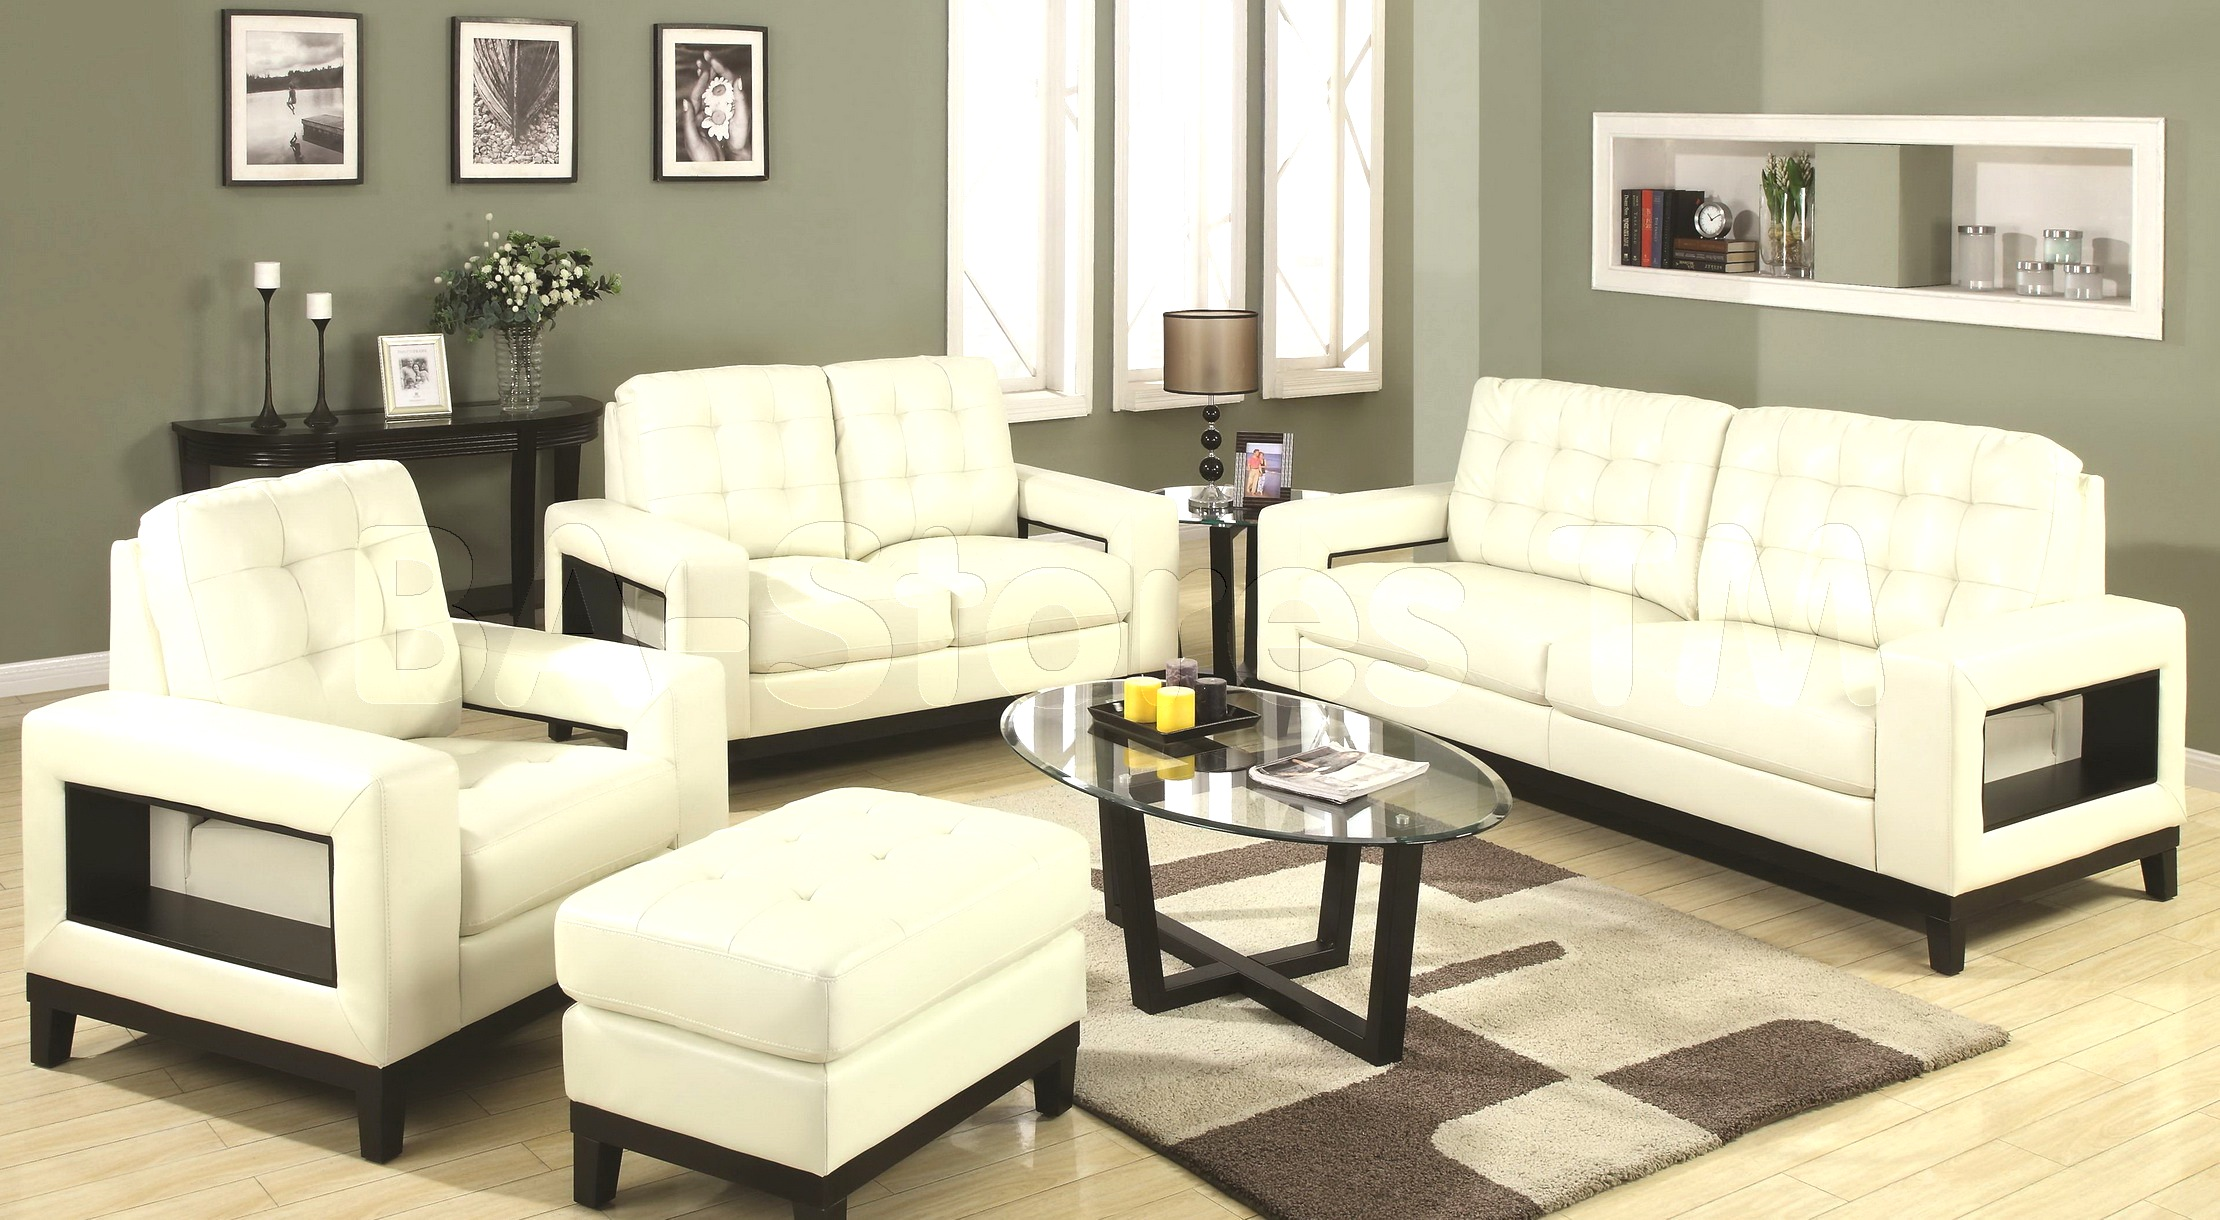 Sofa set designs home design for Contemporary sofa set